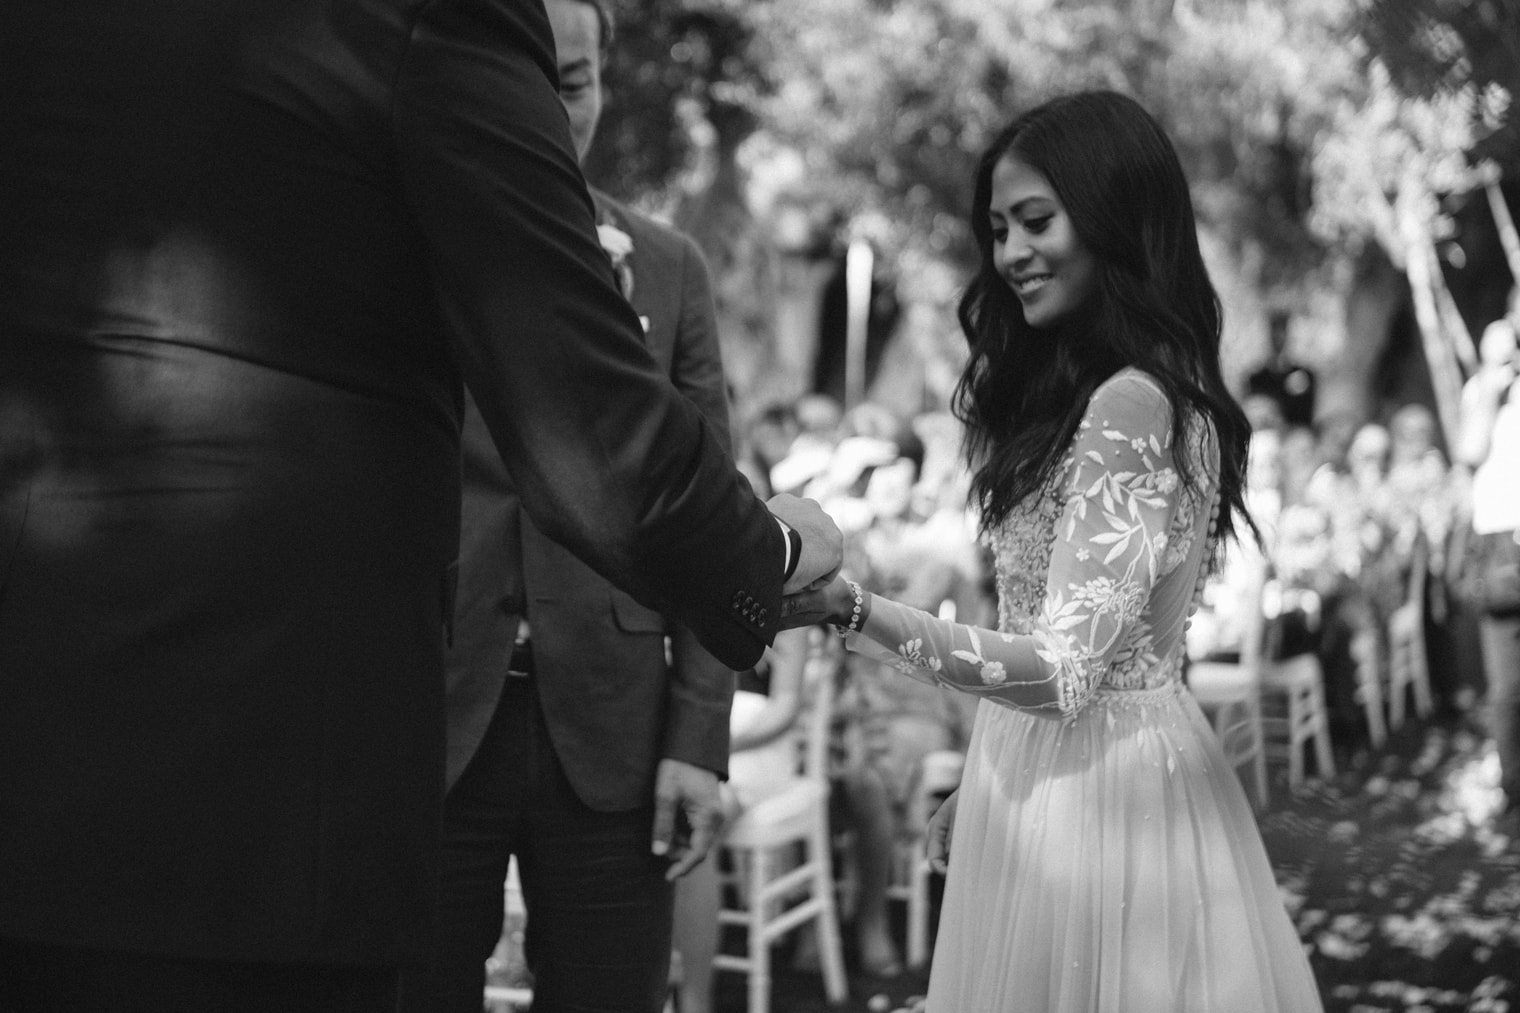 Bride and groom exchange rings at Italian wedding ceremony in Puglia